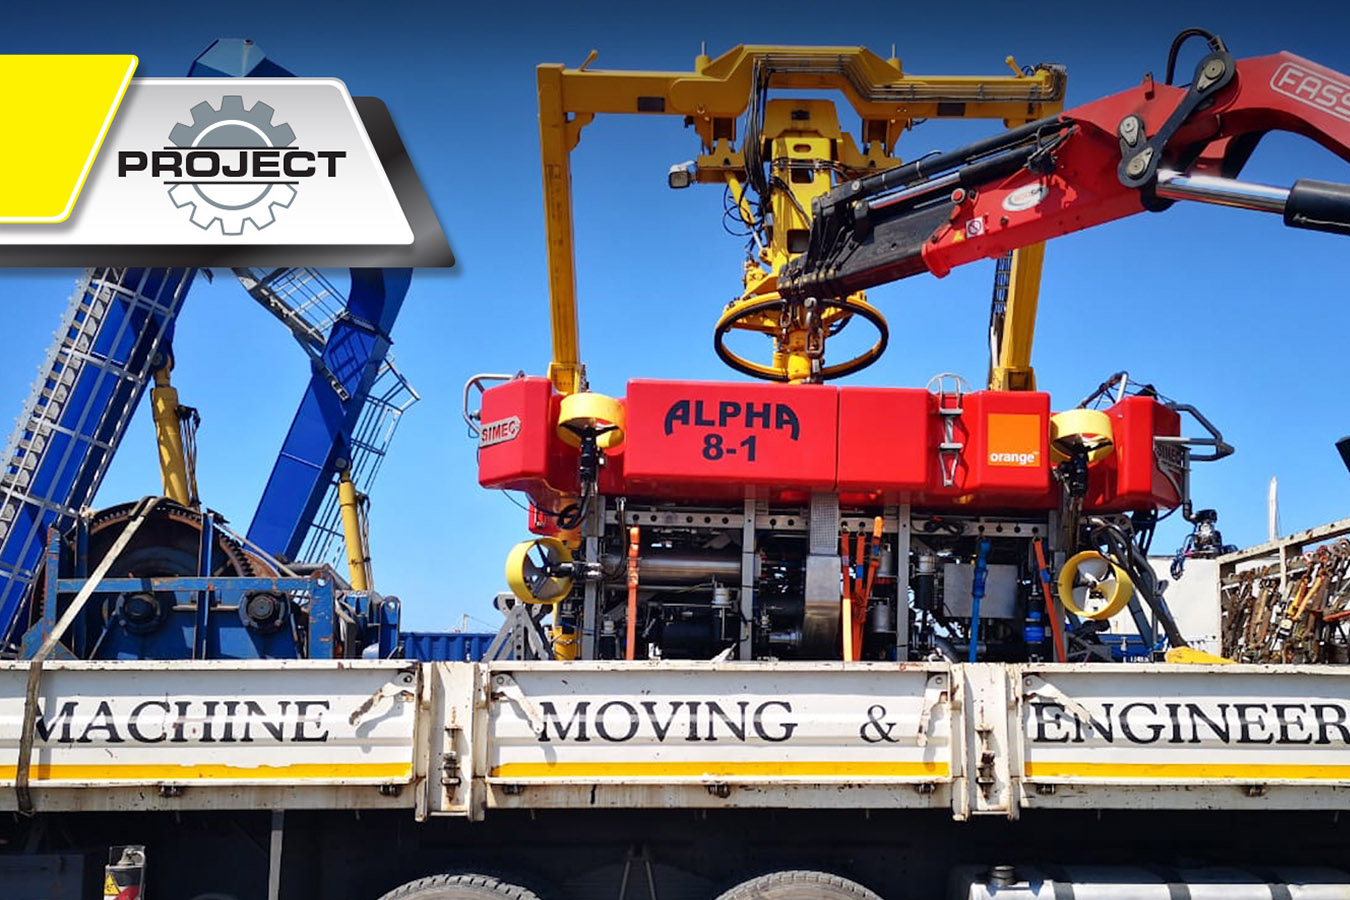 loading an rov mme-projects-mme-Machine-Moving-Engineering-machinery-equipment-Gauteng-KwaZulu-Natal-south-africa